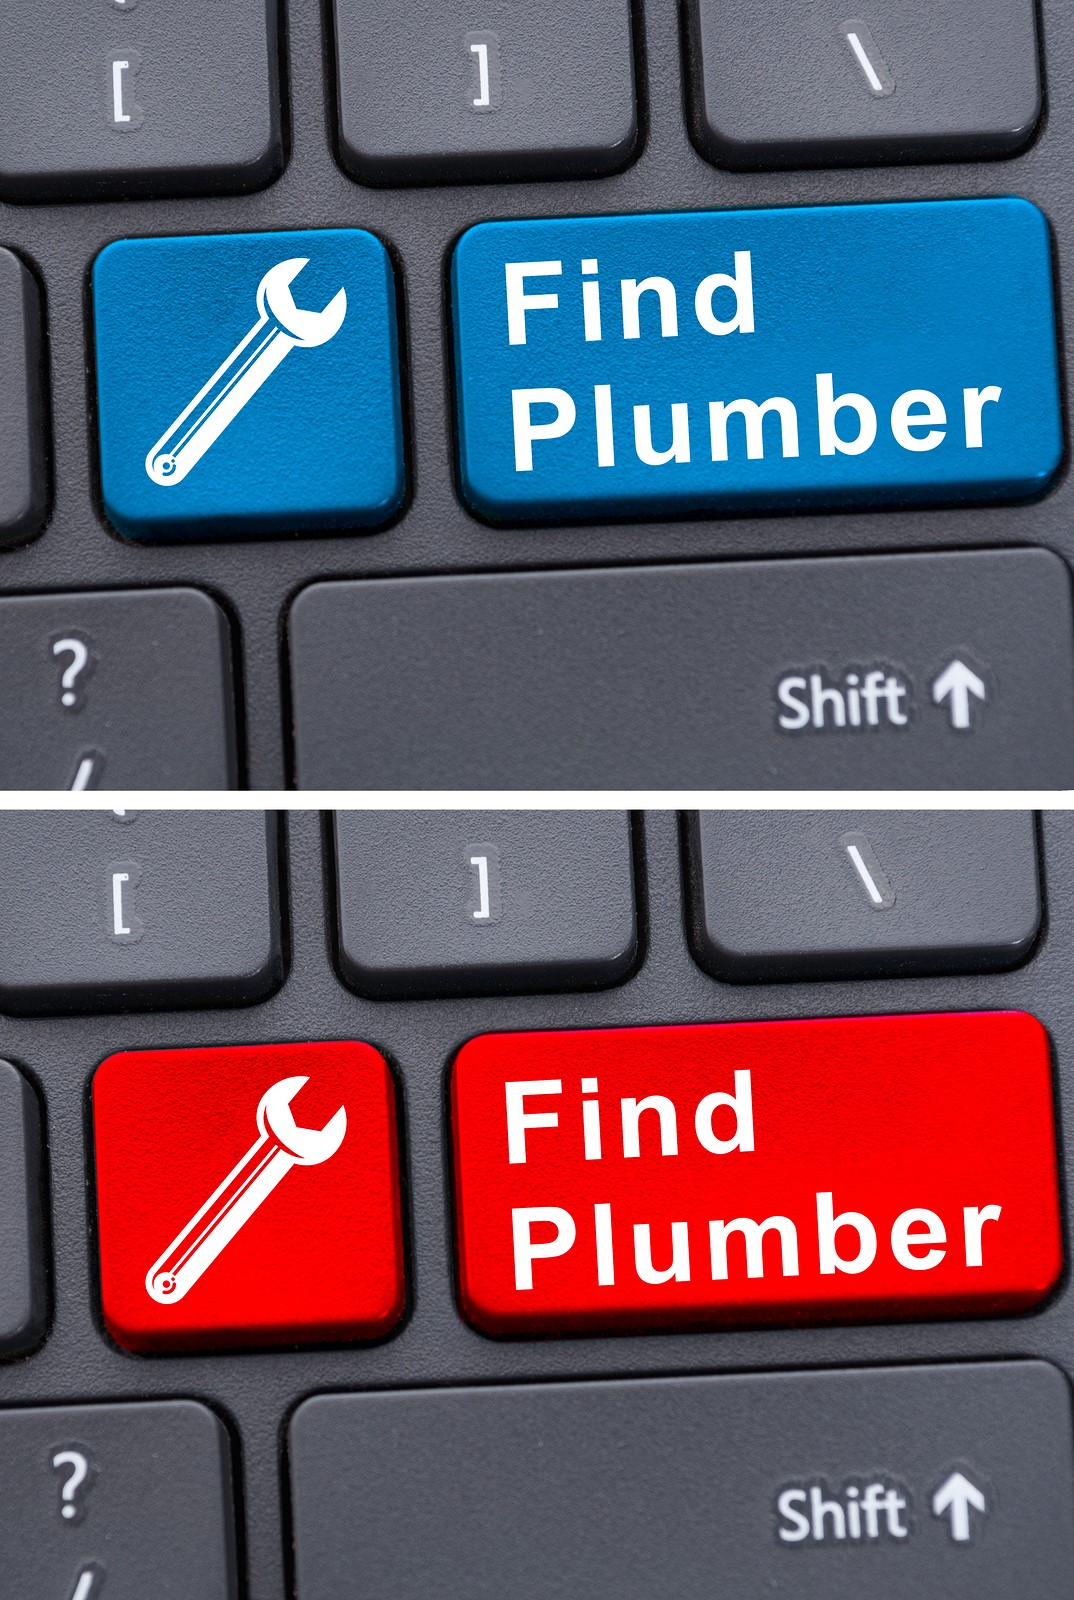 Plumbing Companies using SEO Best Practices Achieve More Success